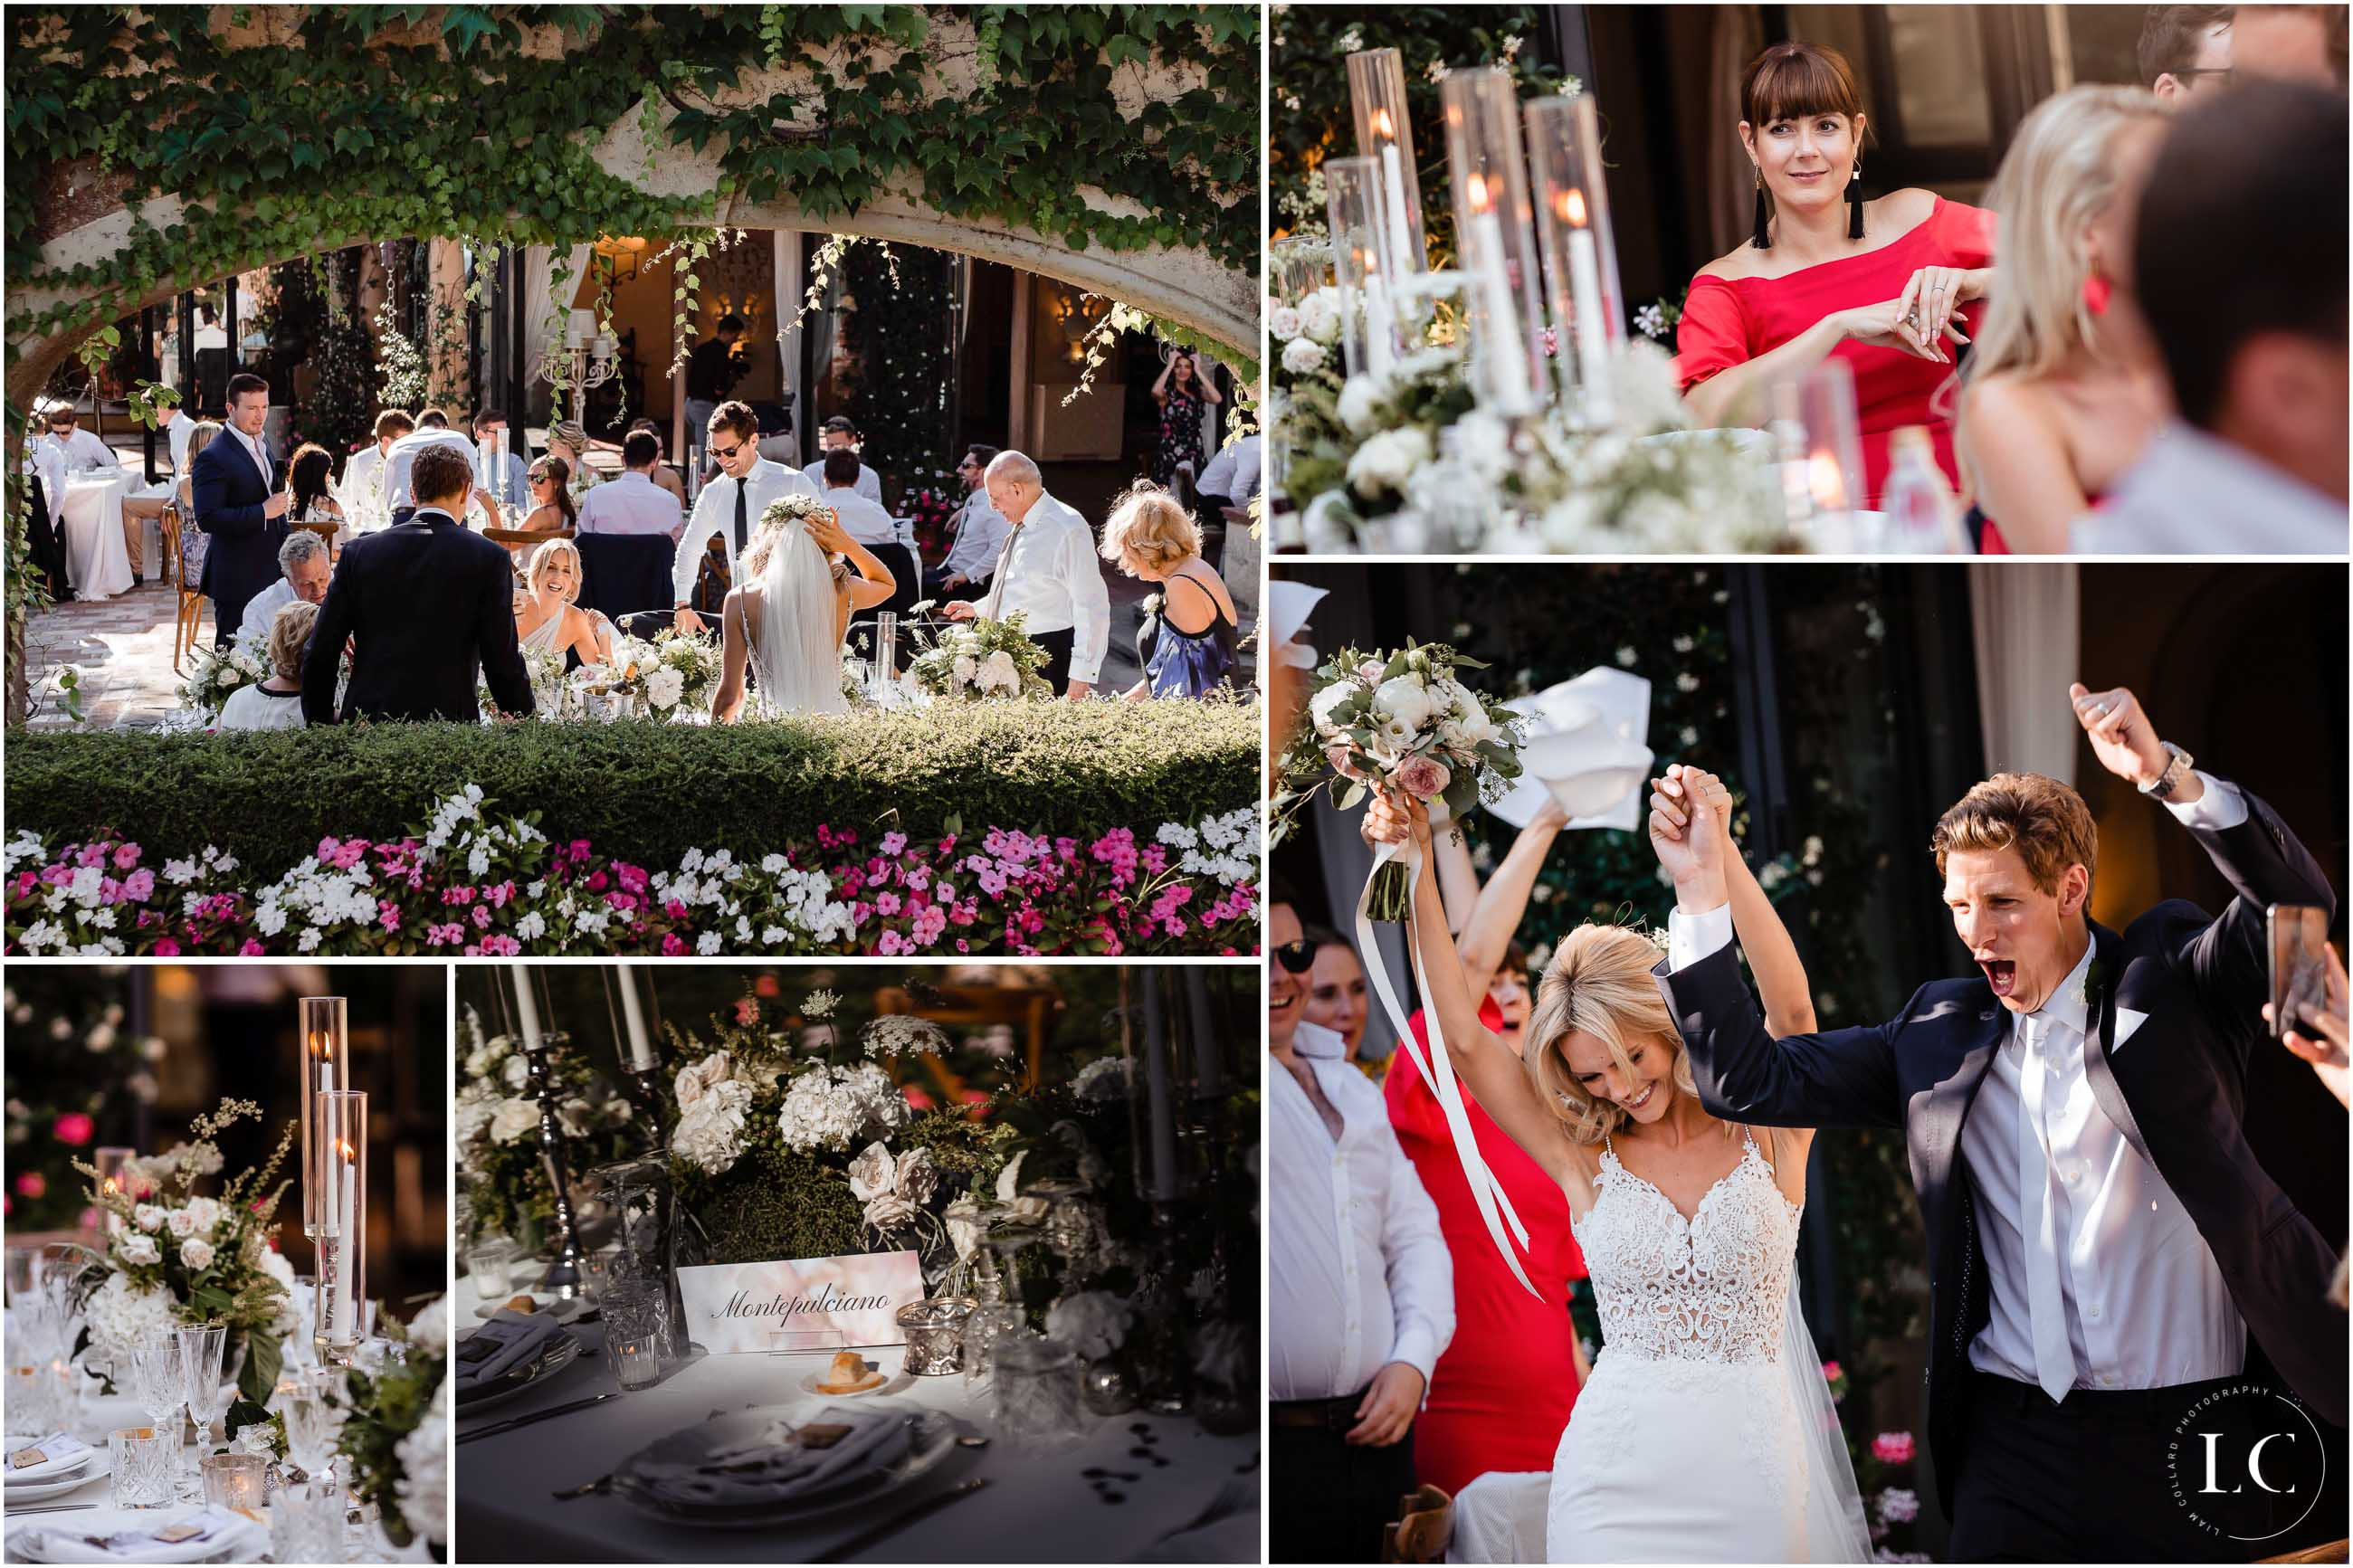 Collage of wedding